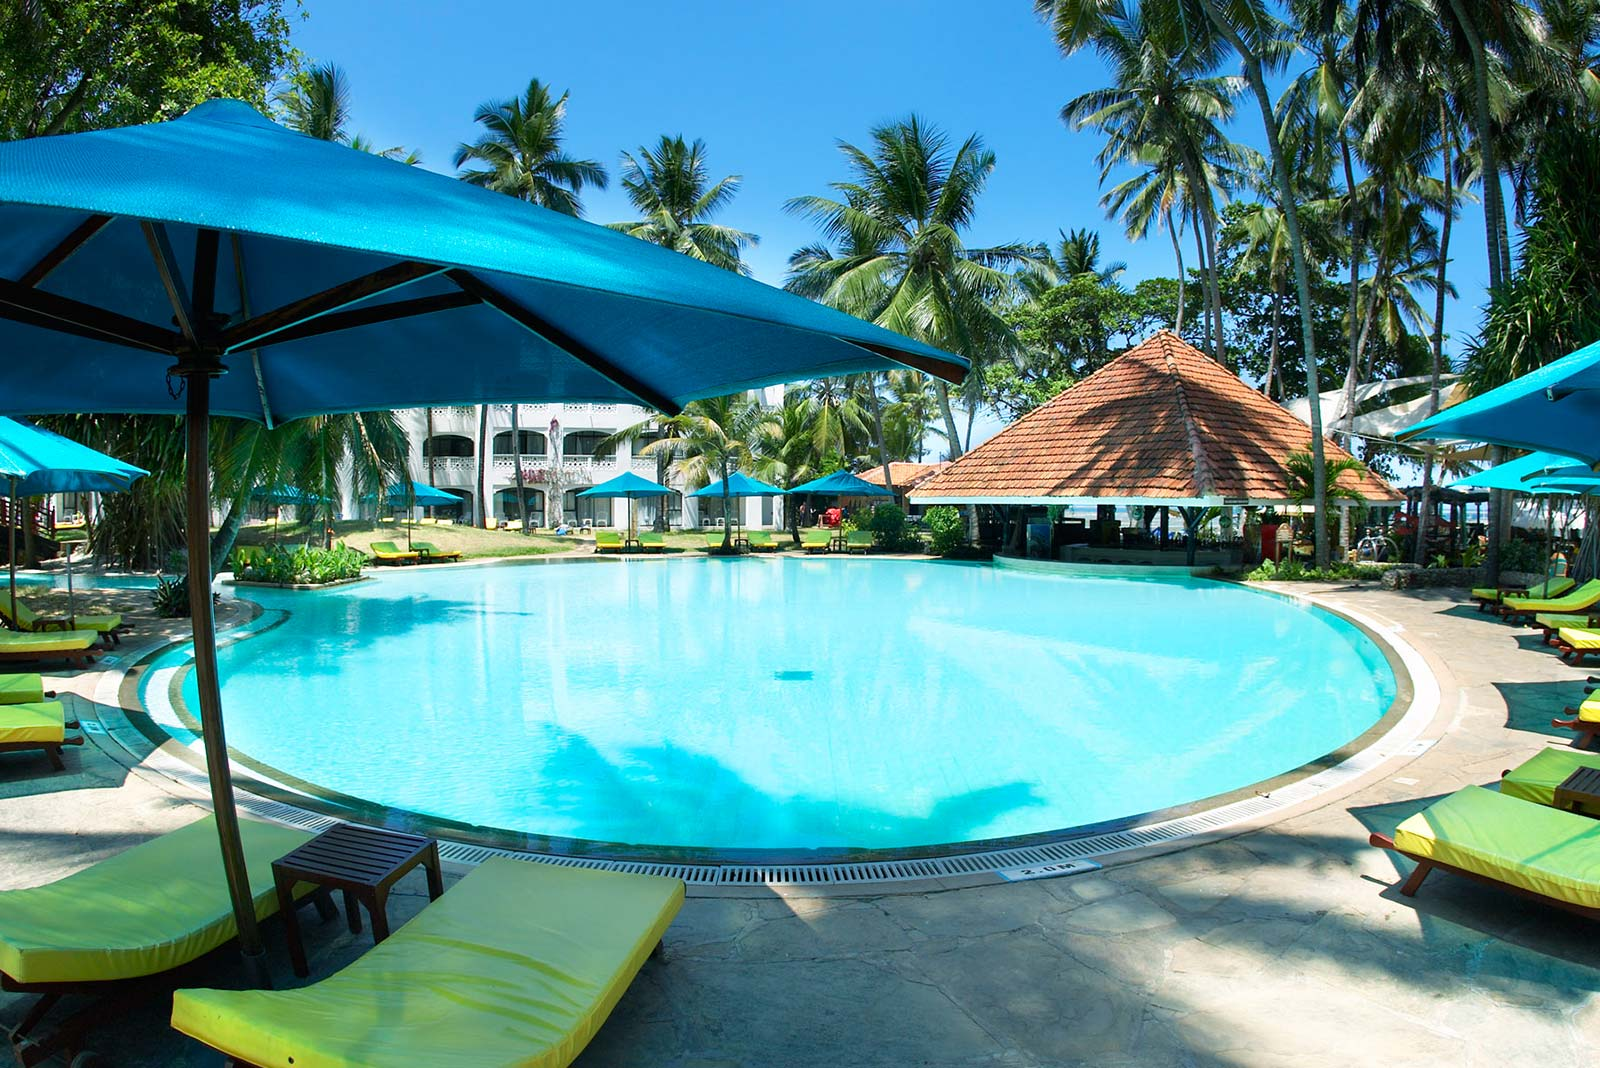 Hotels In Nairobi With Heated Swimming Pools Xplorato Ventures